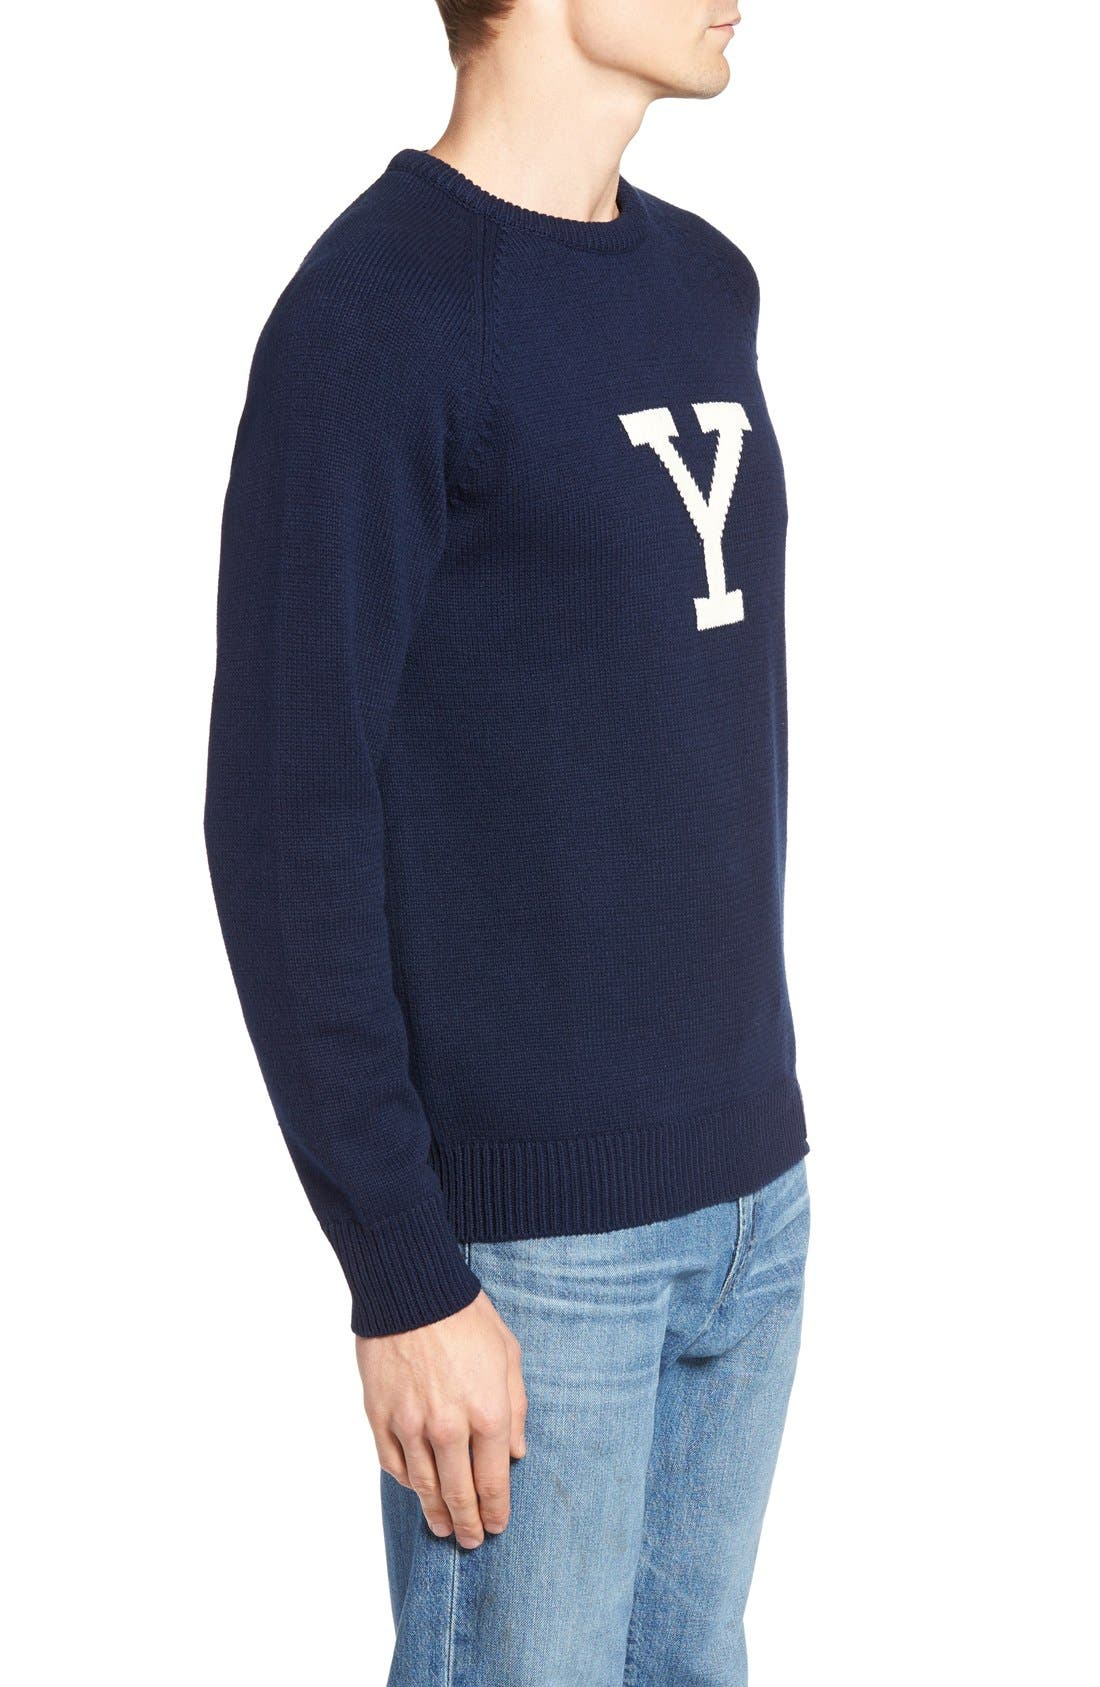 Yale Heritage Sweater,                             Alternate thumbnail 3, color,                             400